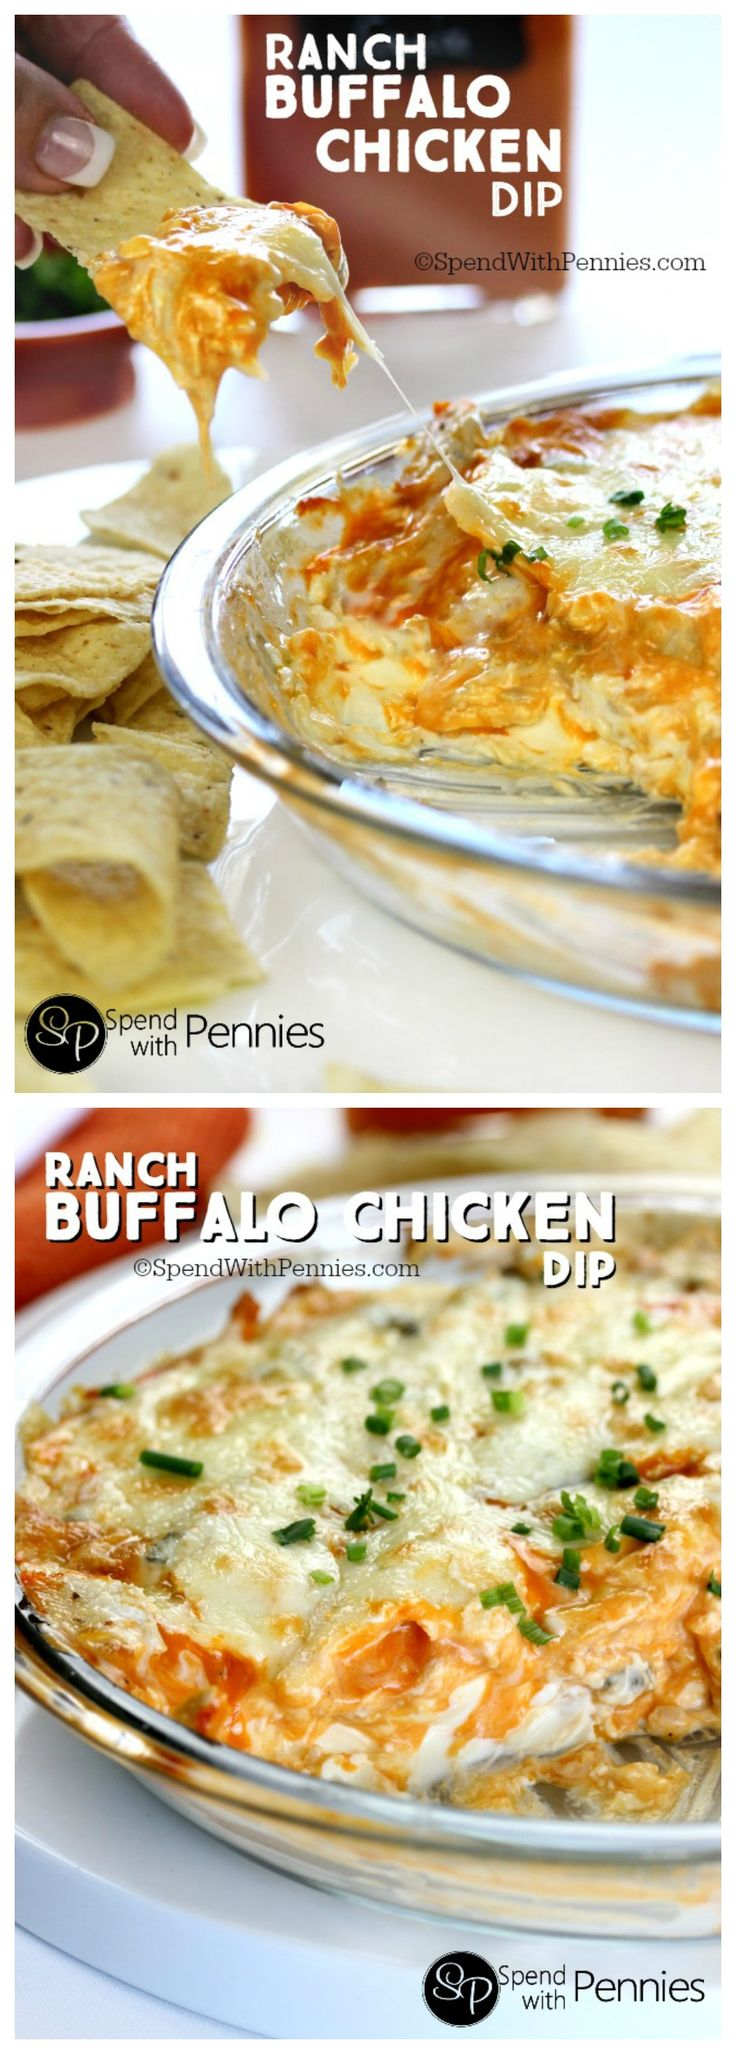 free run purple and teal Ranch Buffalo Chicken Dip is the perfect party recipe  Creamy  cheesy  amp  spicy we love serve this with warm chips   You can sub bleu cheese if preferred